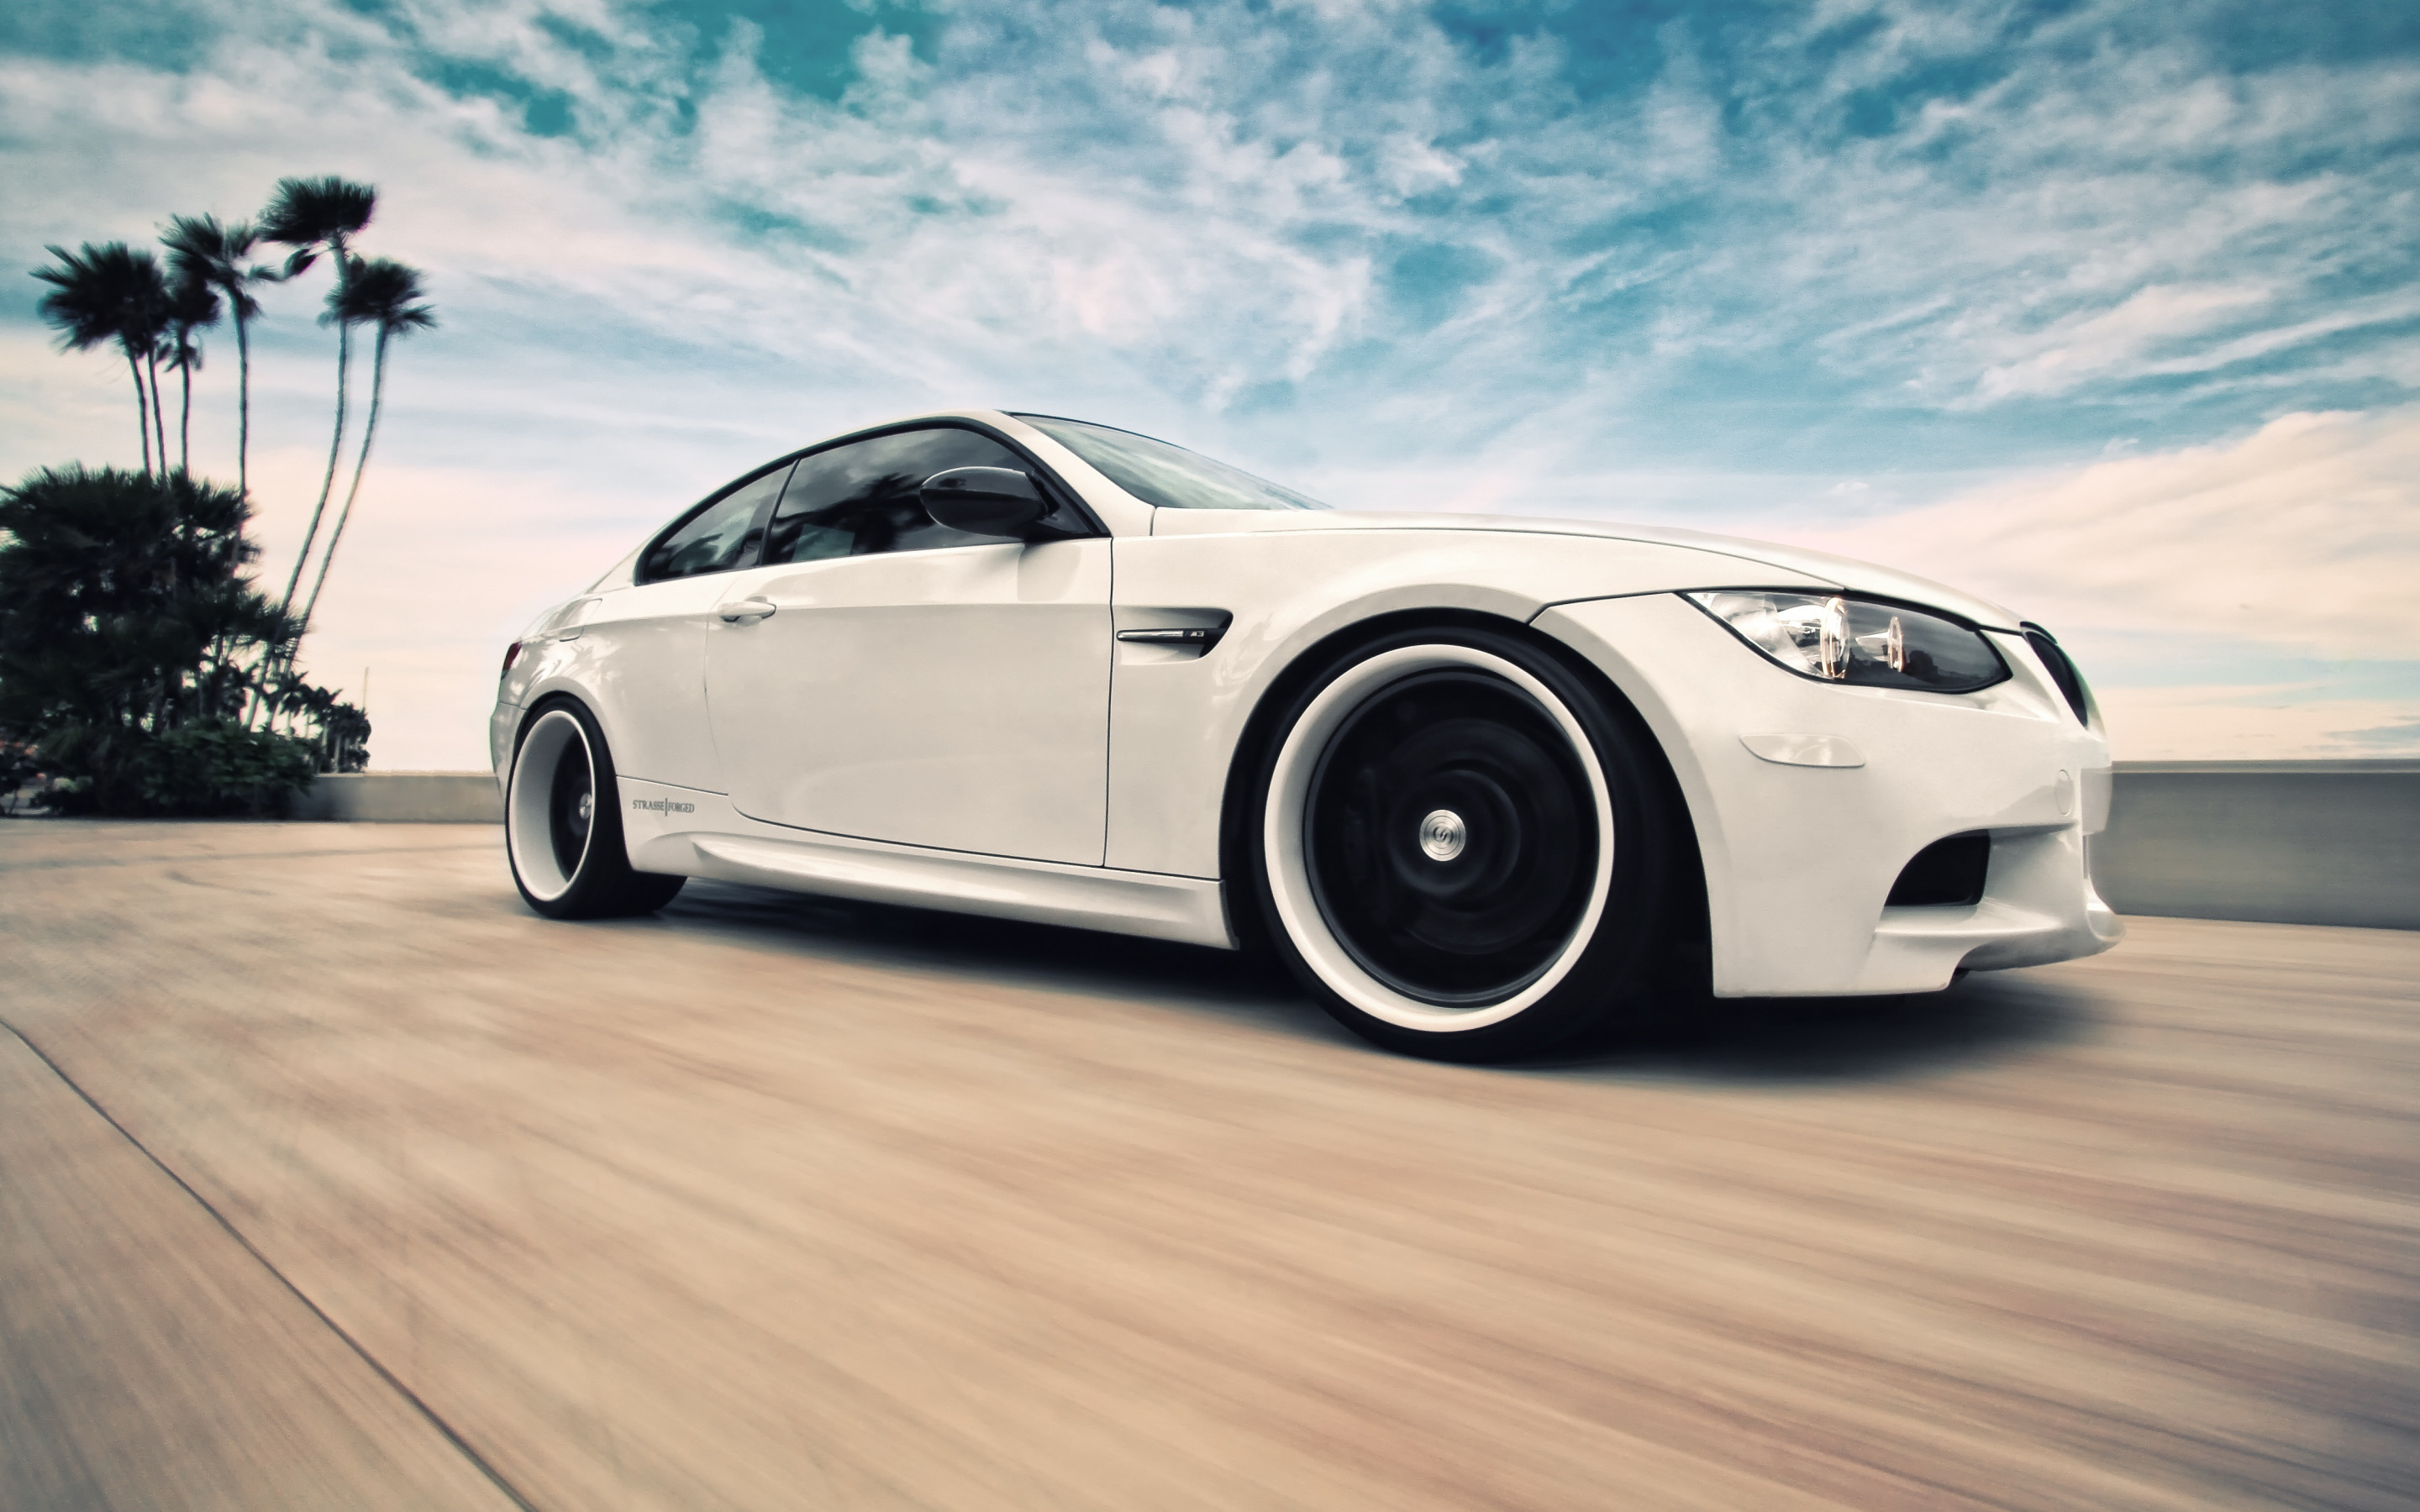 Bmw M6 Hamann Tuning Side Crystal City Car Wallpapers B. Download Wallpaper  Speed